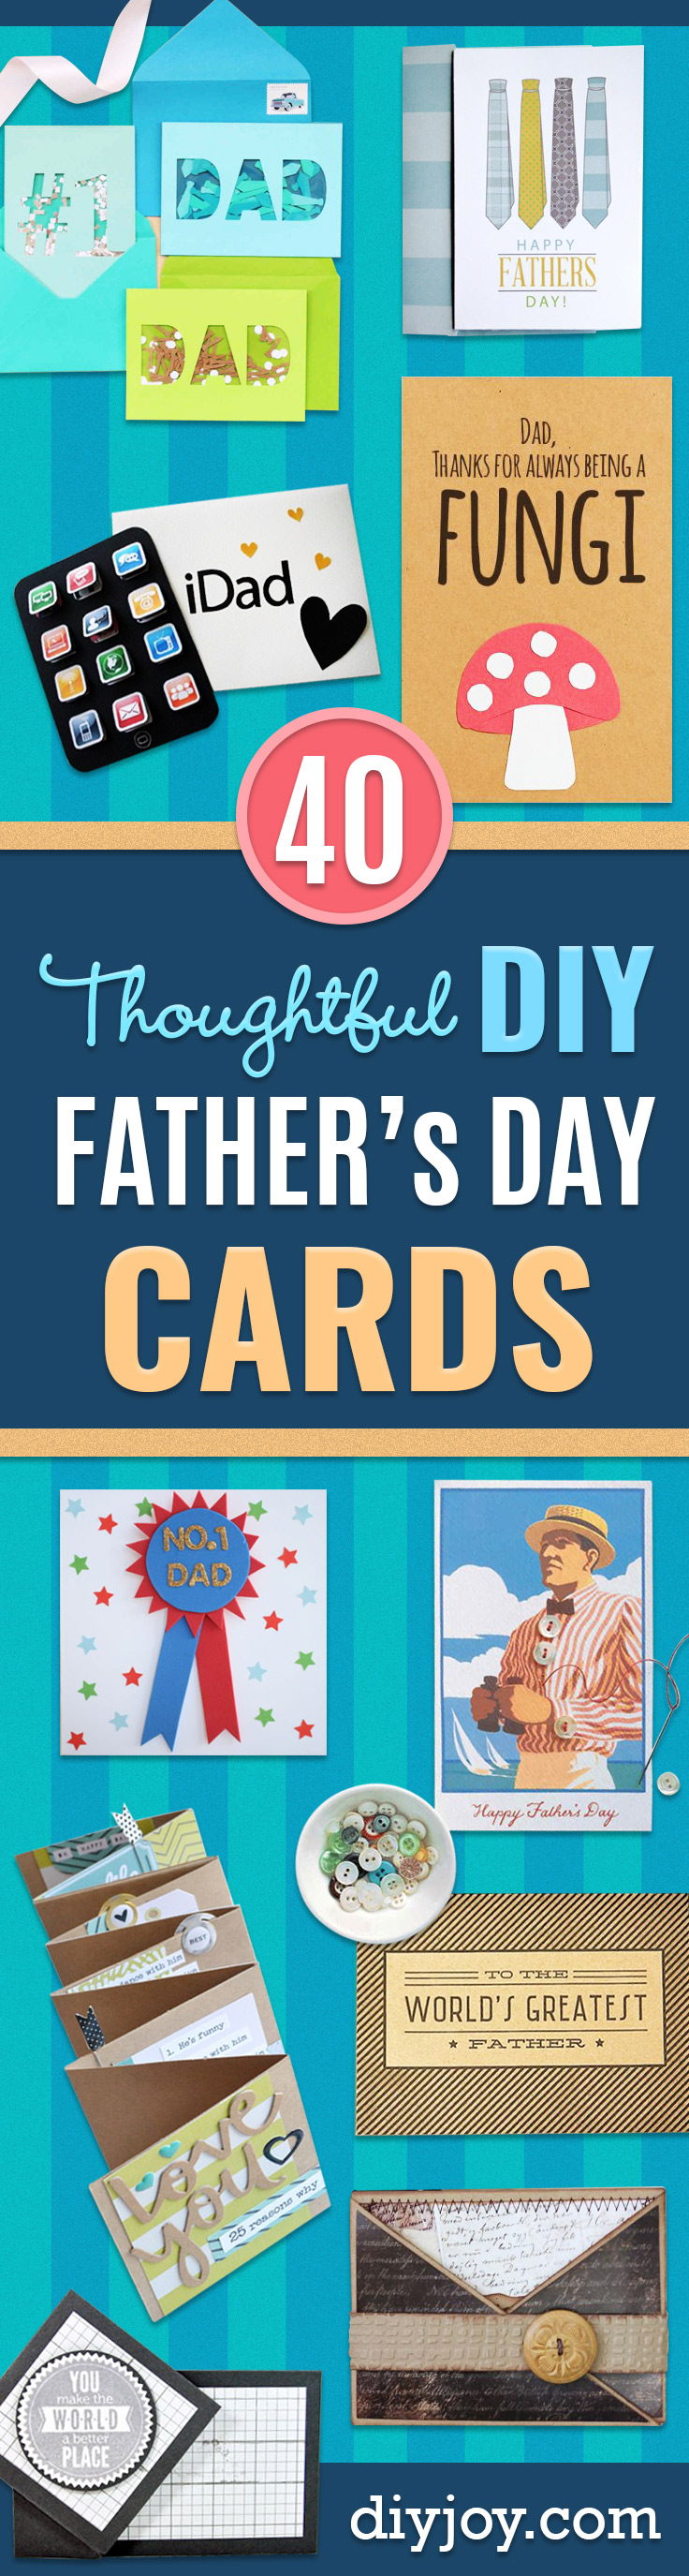 Best DIY Fathers Day Cards - Easy Card Projects to Make for Dad - Cute and Quick Things To Make For Your Father - Paper, Cardboard, Gift Card, Cool Ideas for Kids and Teens To Make - Funny, Thoughtful, Homemade Cards for Him http://diyjoy.com/diy-fathers-day-cards